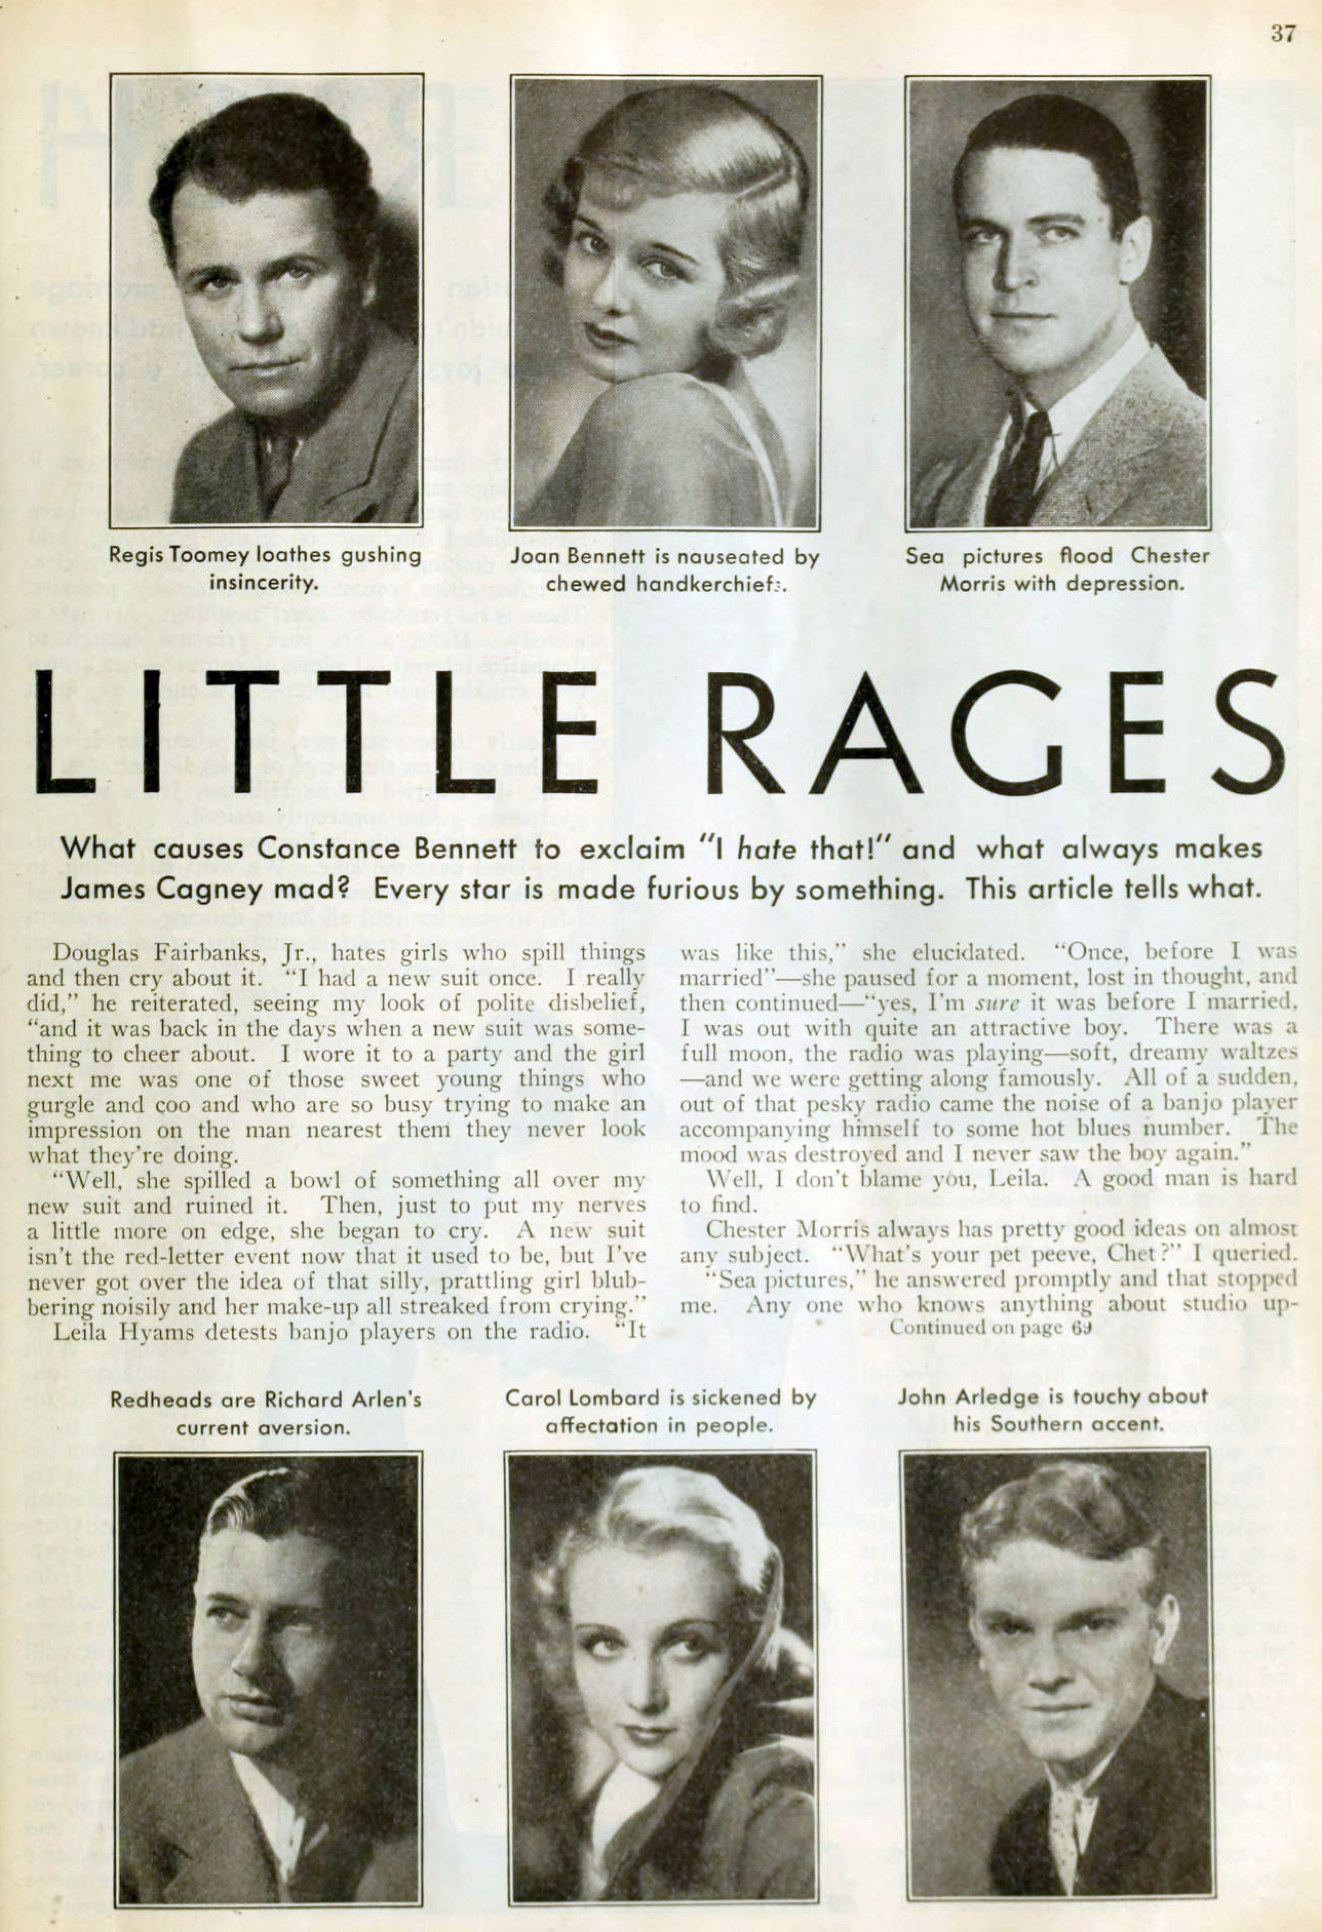 carole lombard picture play aug 1932 their little rages 01a